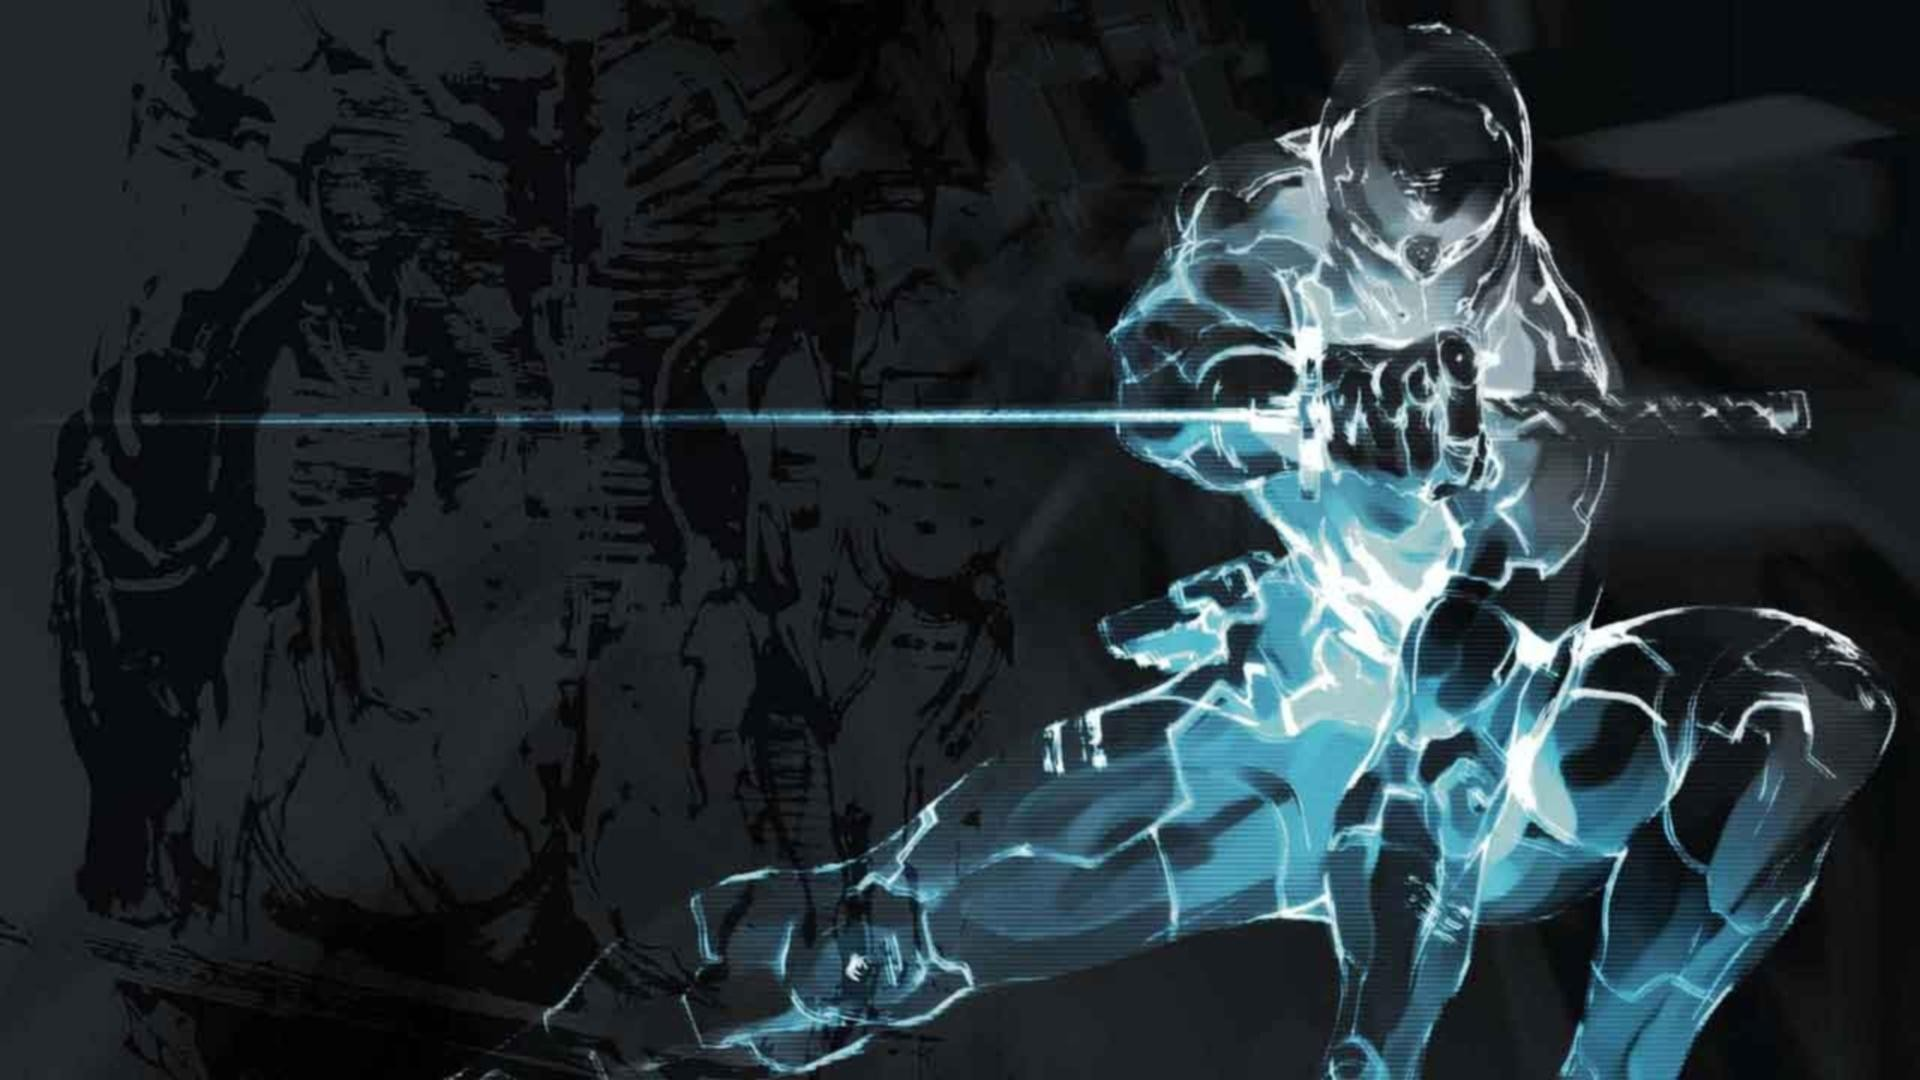 Warframe wallpaper ·① Download free backgrounds for ...